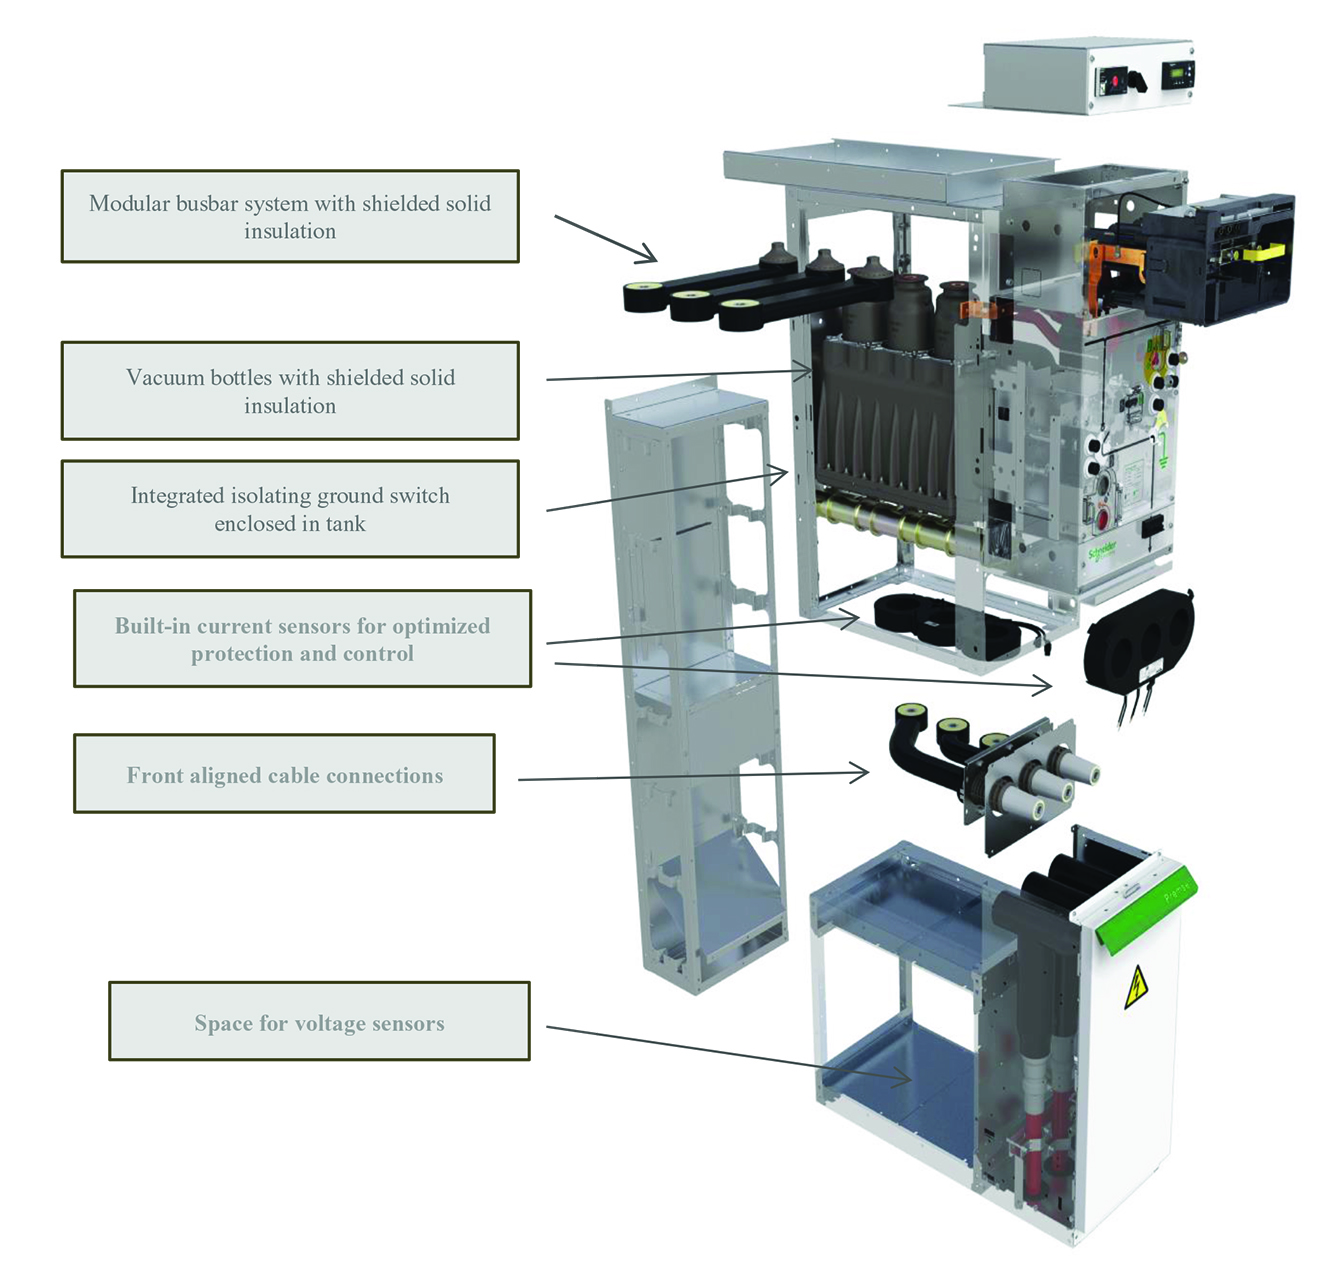 Solid insulation switchgear for space savings and safety - EE Publishers